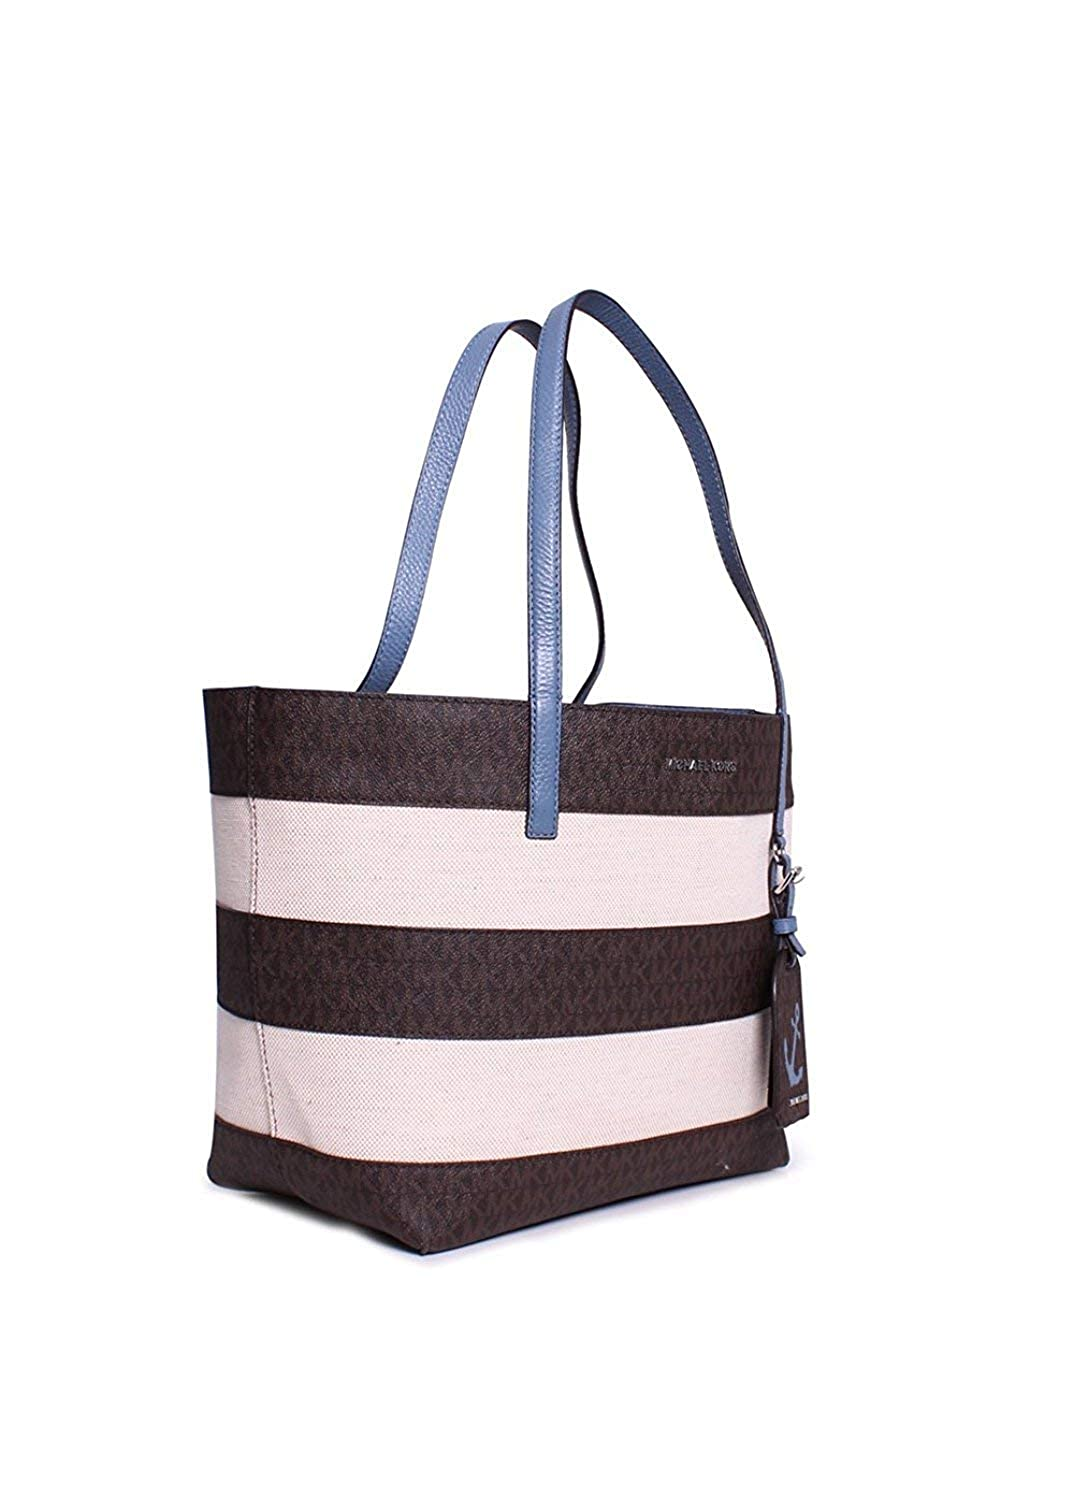 0ad451acf1b4 MICHAEL Michael Kors Striped Large East West Tote